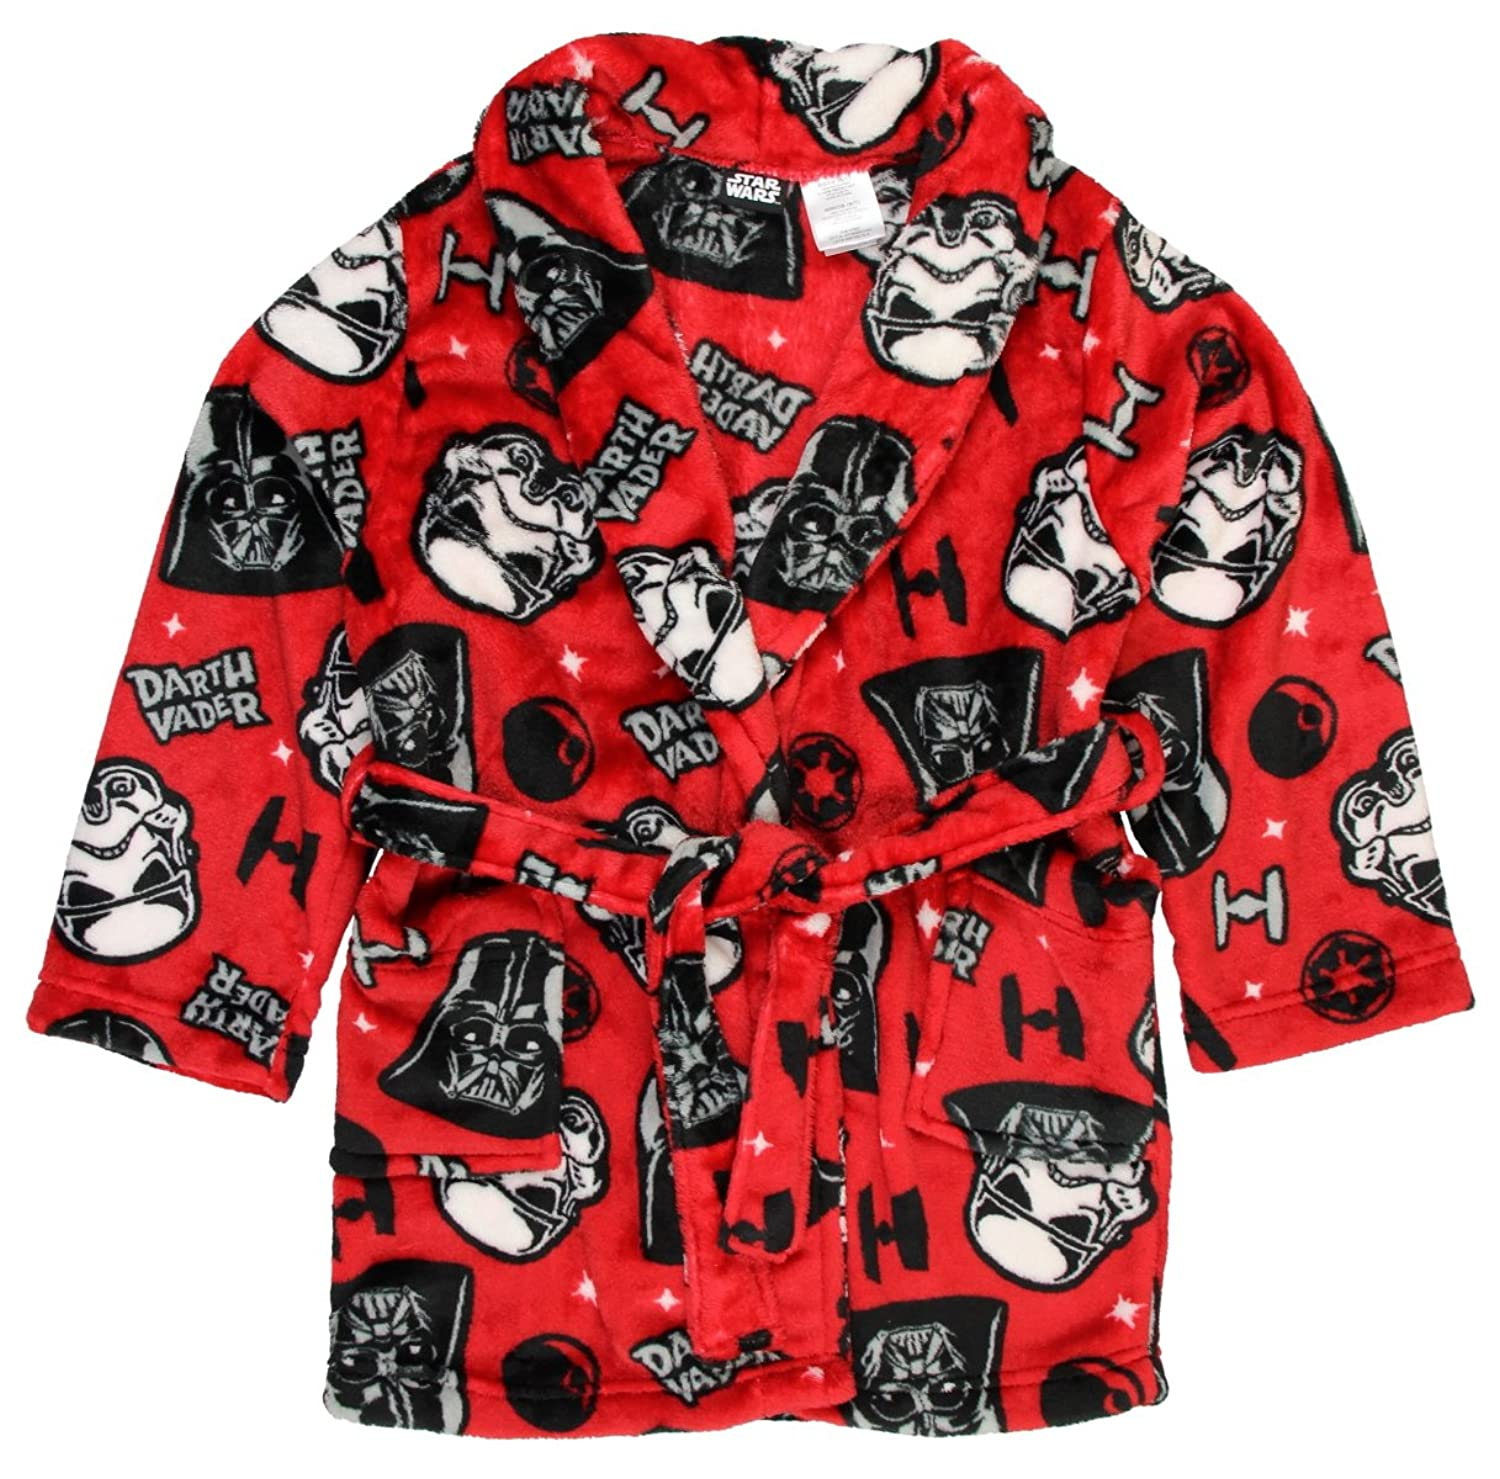 Star Wars Boys Bath Robe Darth Vader Stormtroopers Red